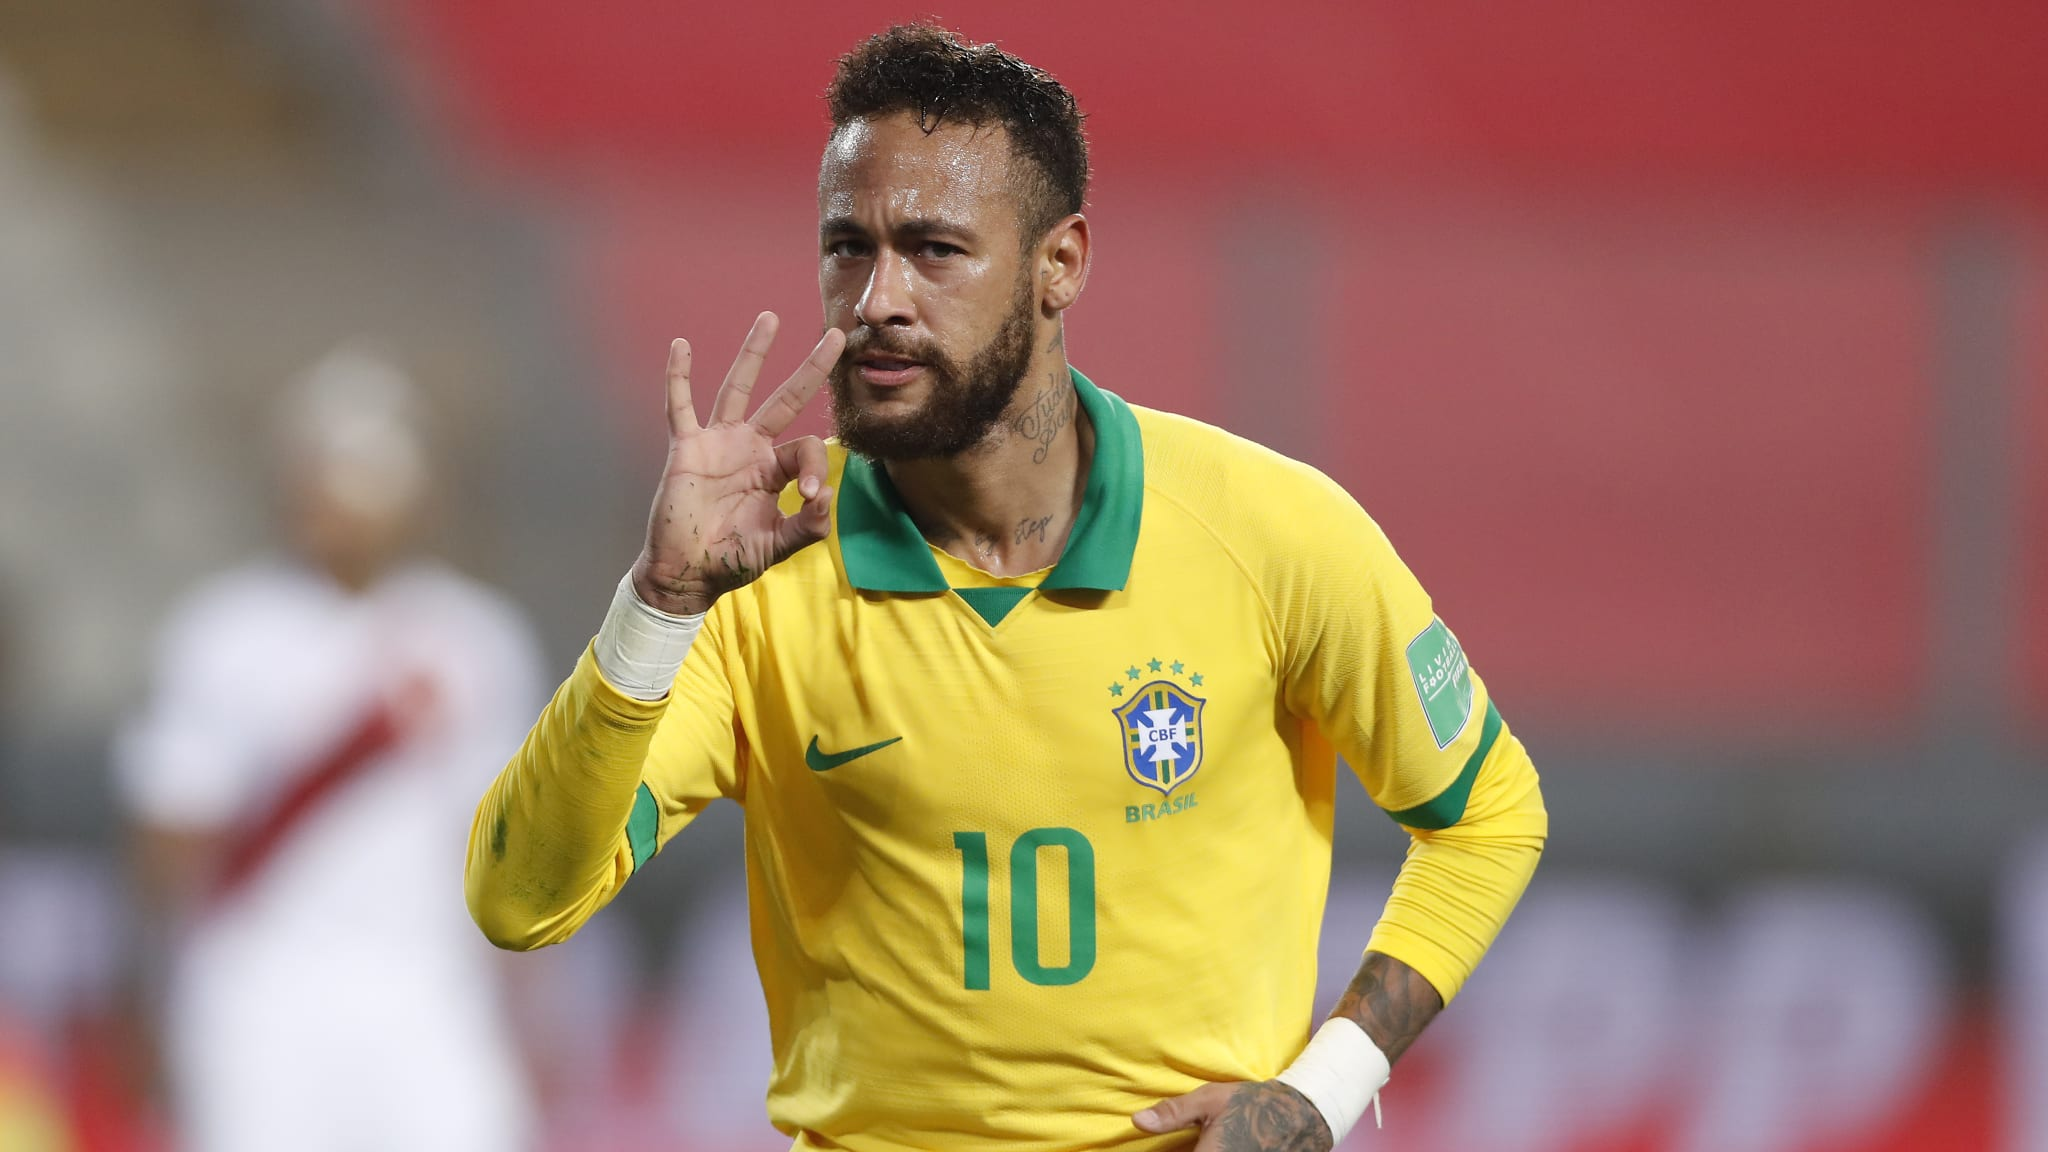 Neymar Jr. of Brazil celebrates after scoring the fourth goal of his team